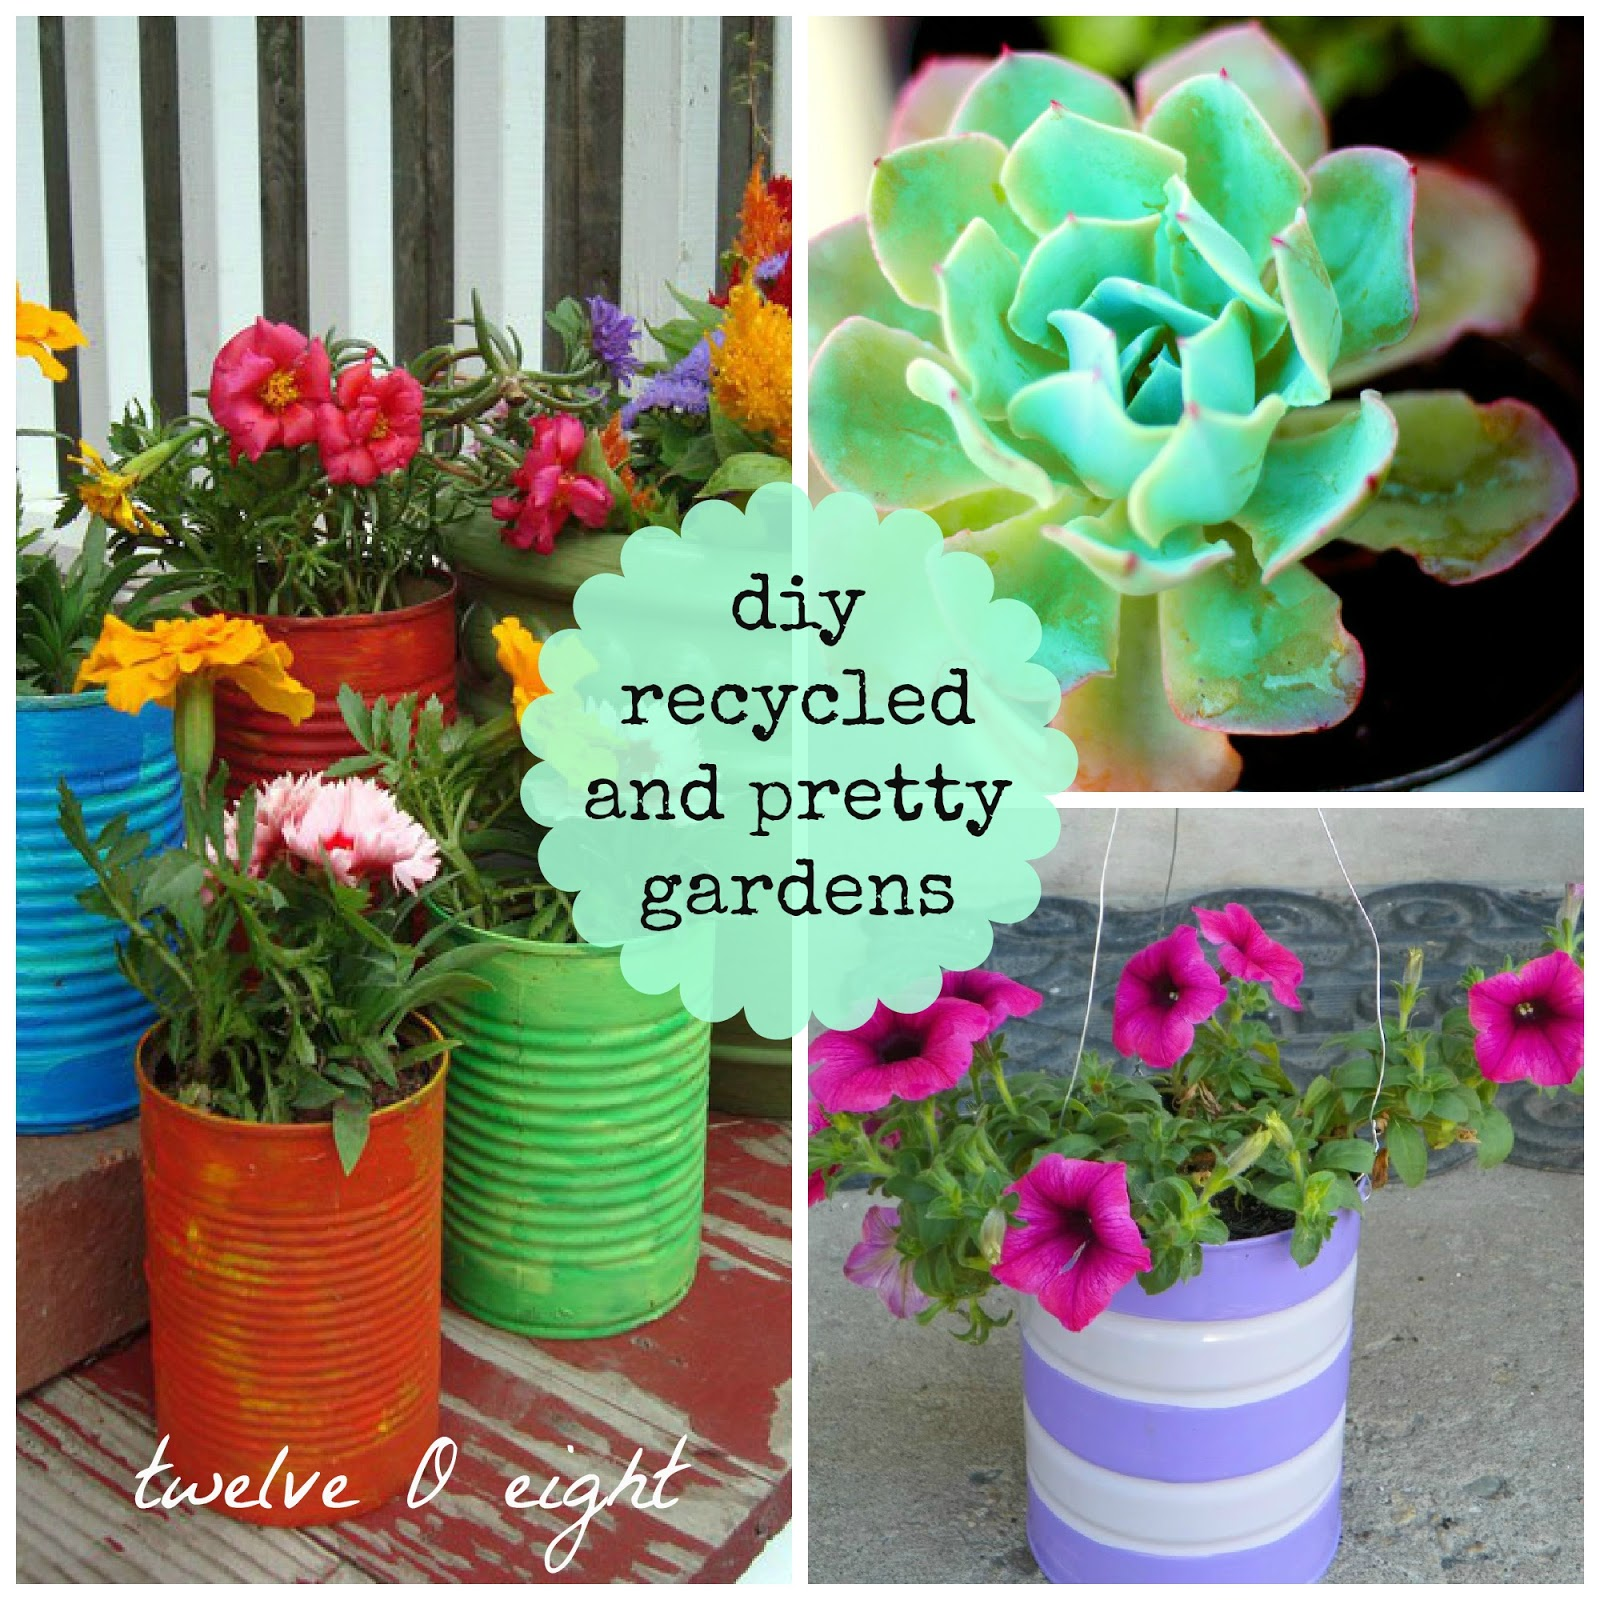 Diy Recycled Planters: DIY Recycled And Pretty Gardens